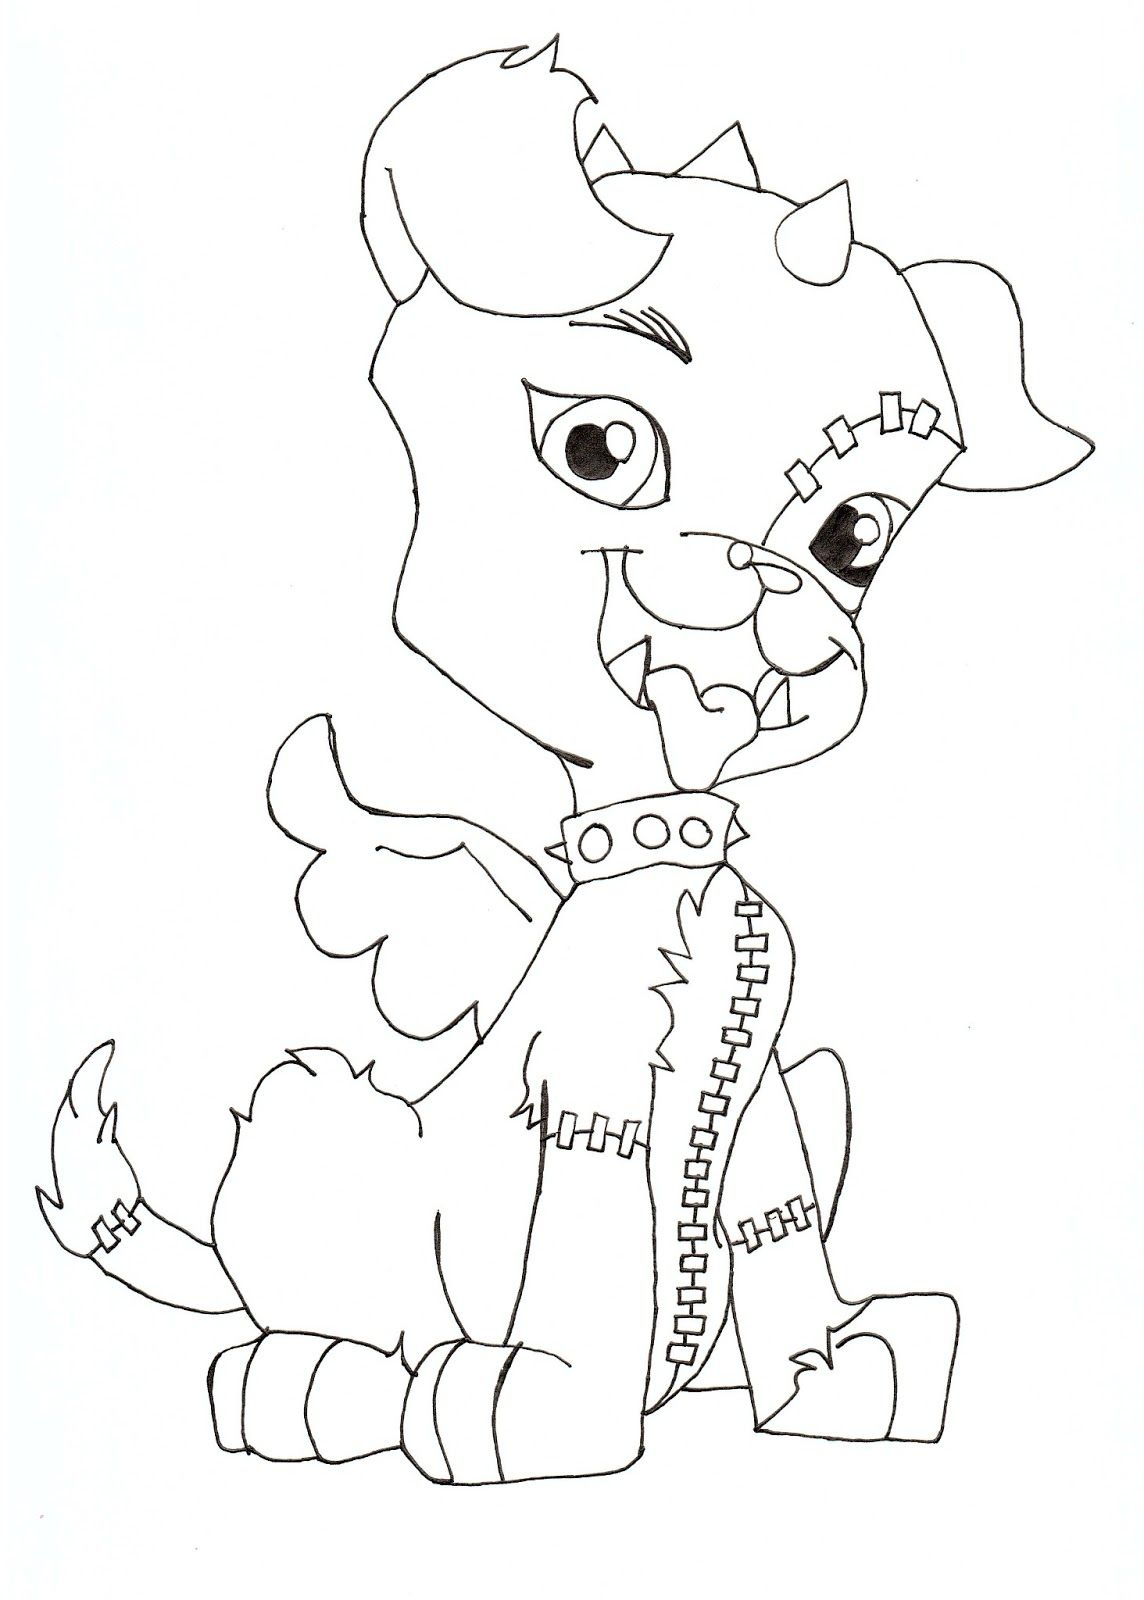 monster high coloring pages | ... about monster high dolls ... - Coloring Pages Monster High Dolls